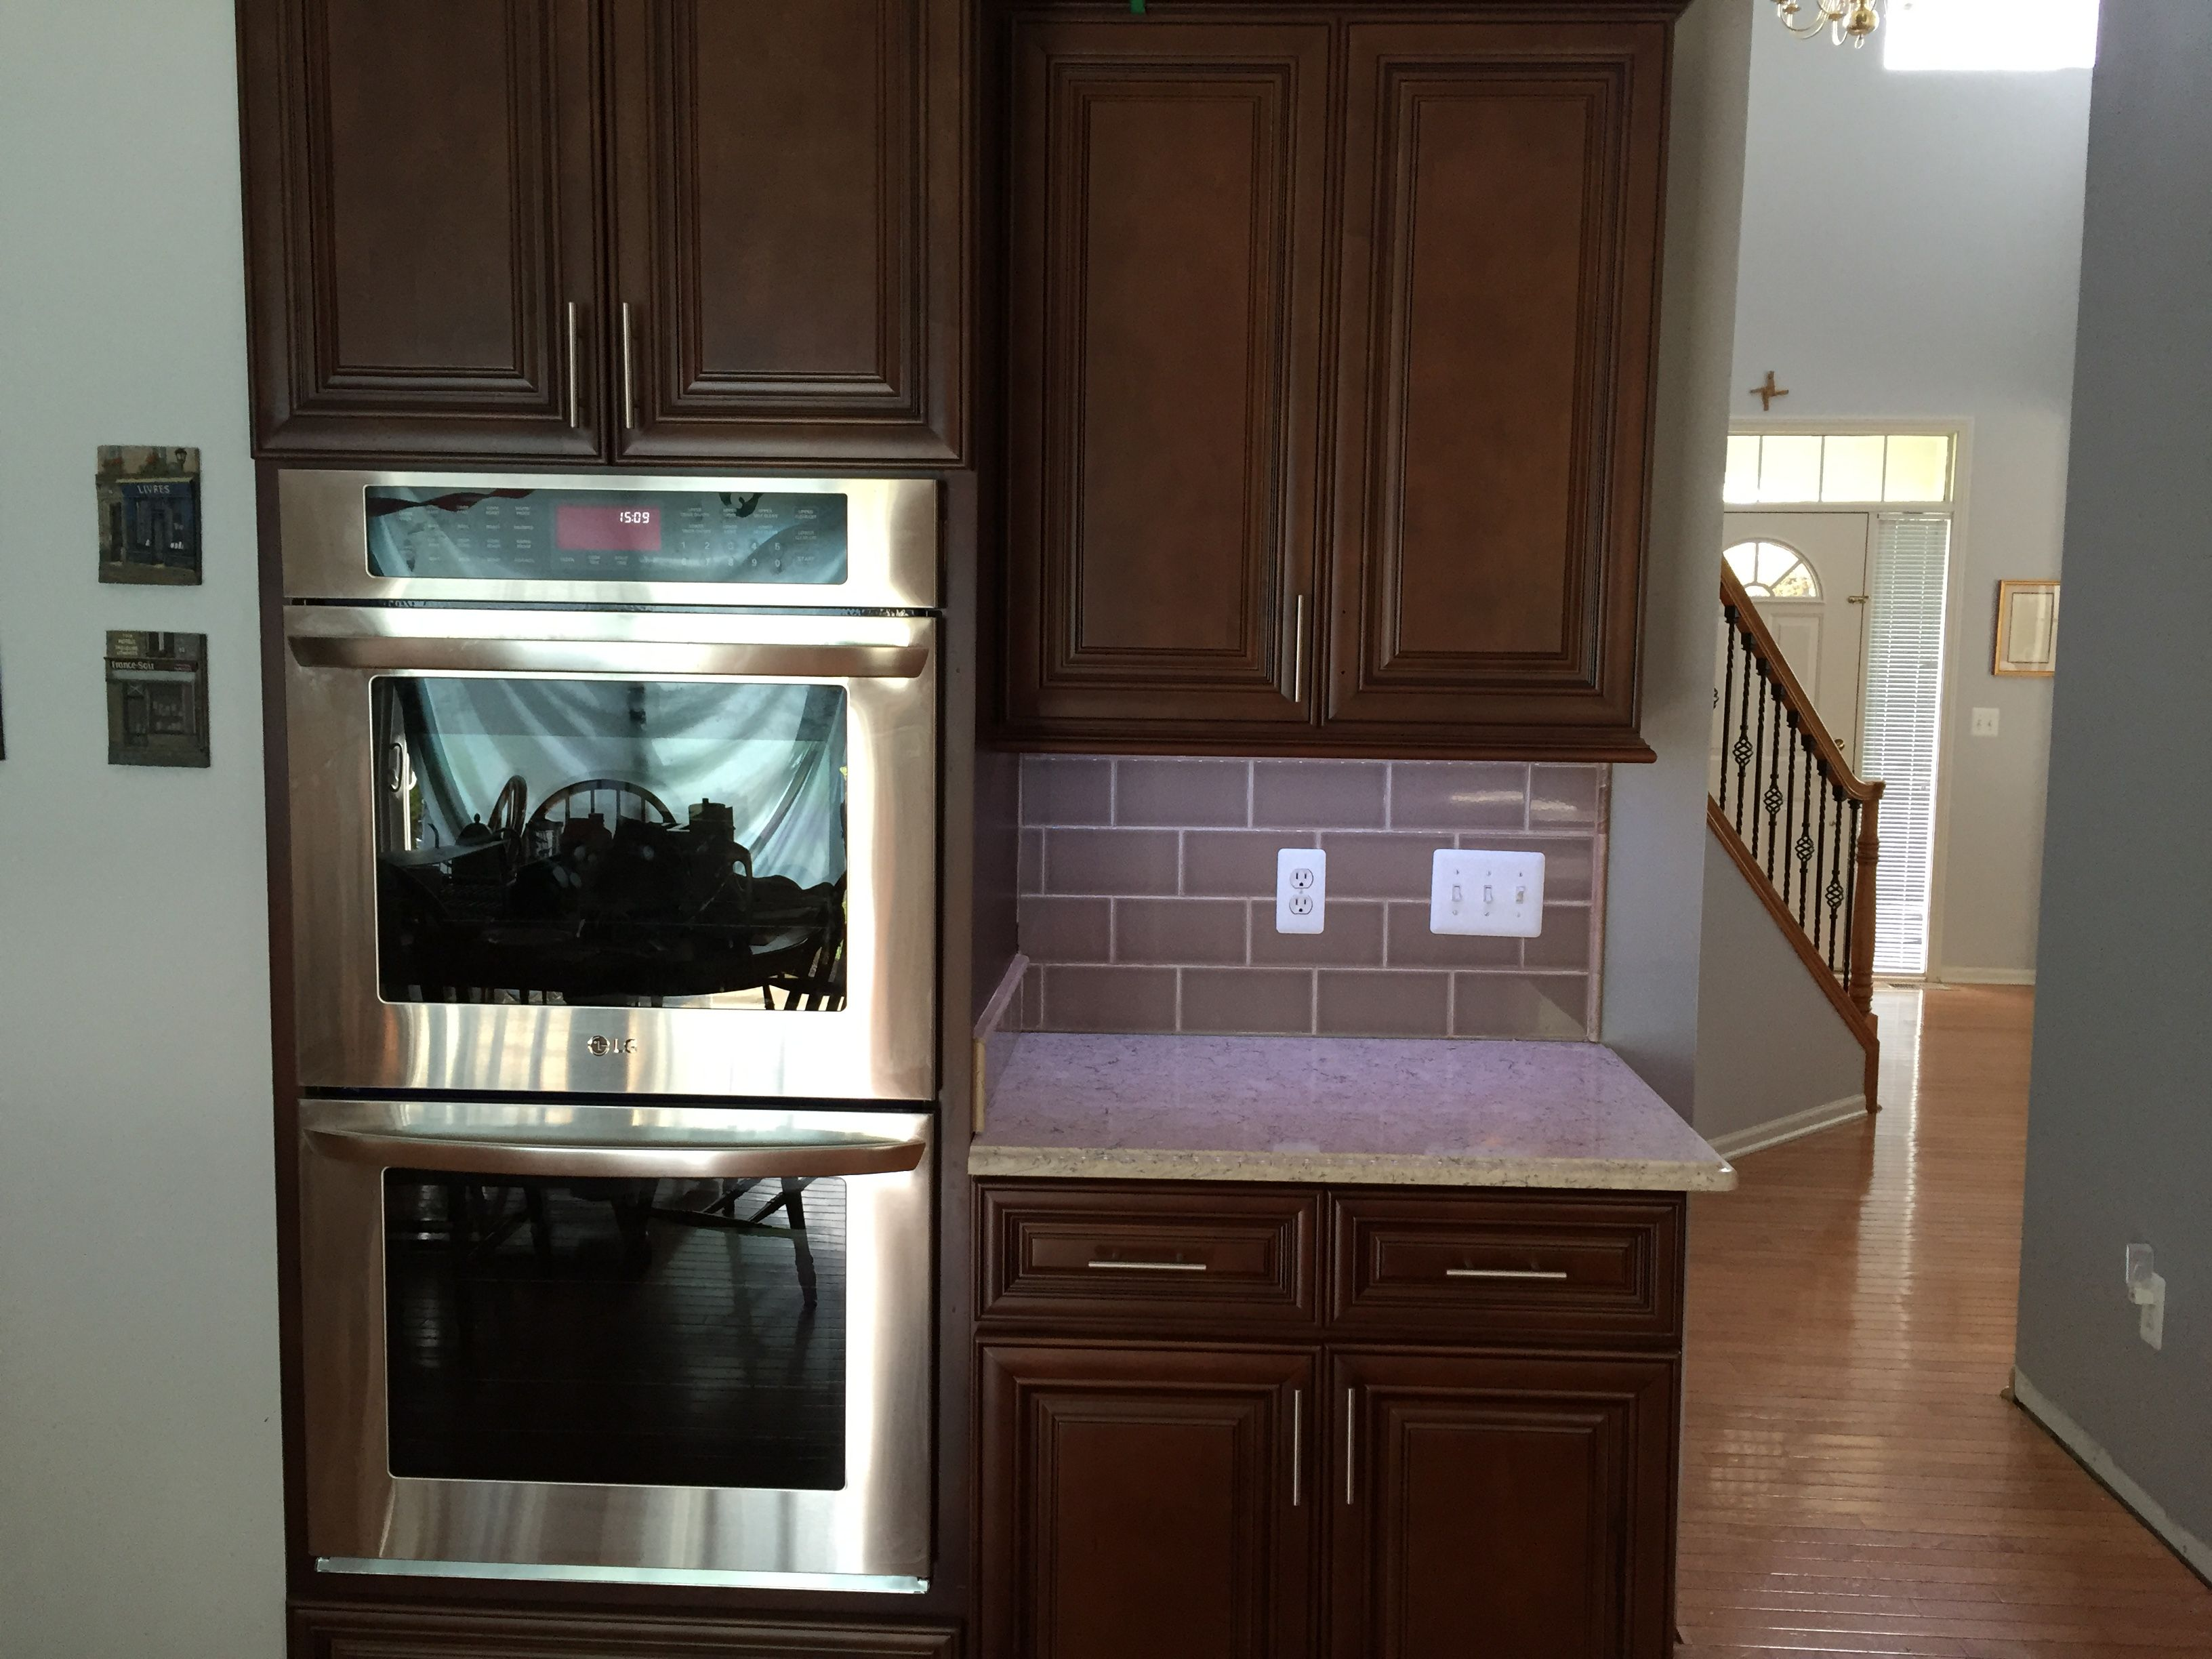 Charleston Saddle Rta Kitchen Cabinets Made By Lily Ann Cabinets Imagine Cooking And Entertai White Diy Kitchens Design Your Kitchen Kitchen Designs Layout